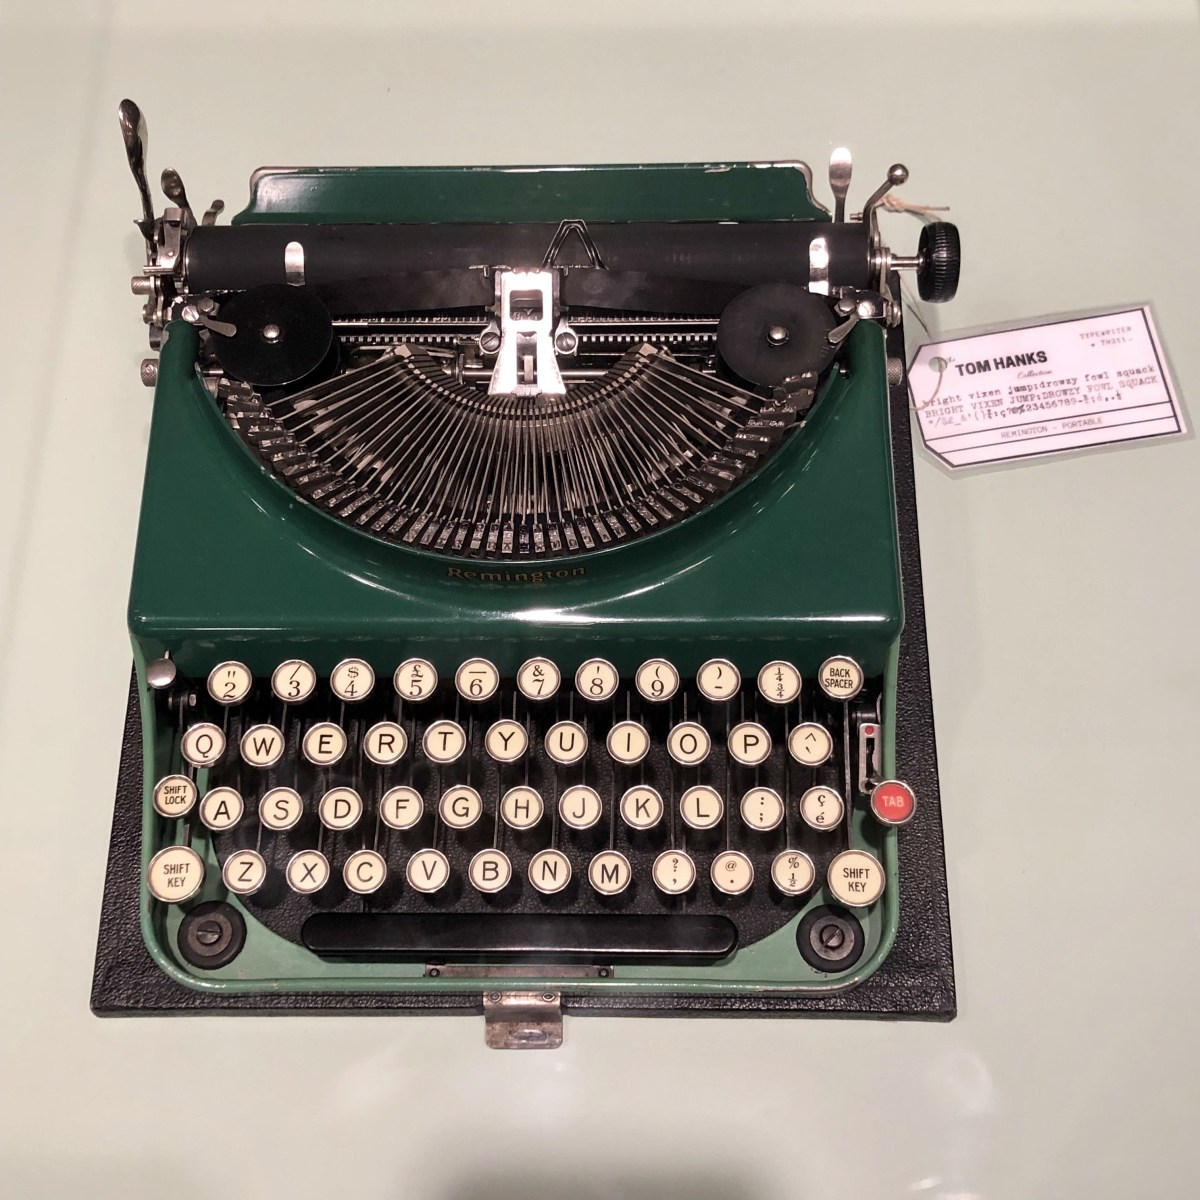 A typewriter from Tom Hanks' collection; Credit: Shana Nys Dambrot